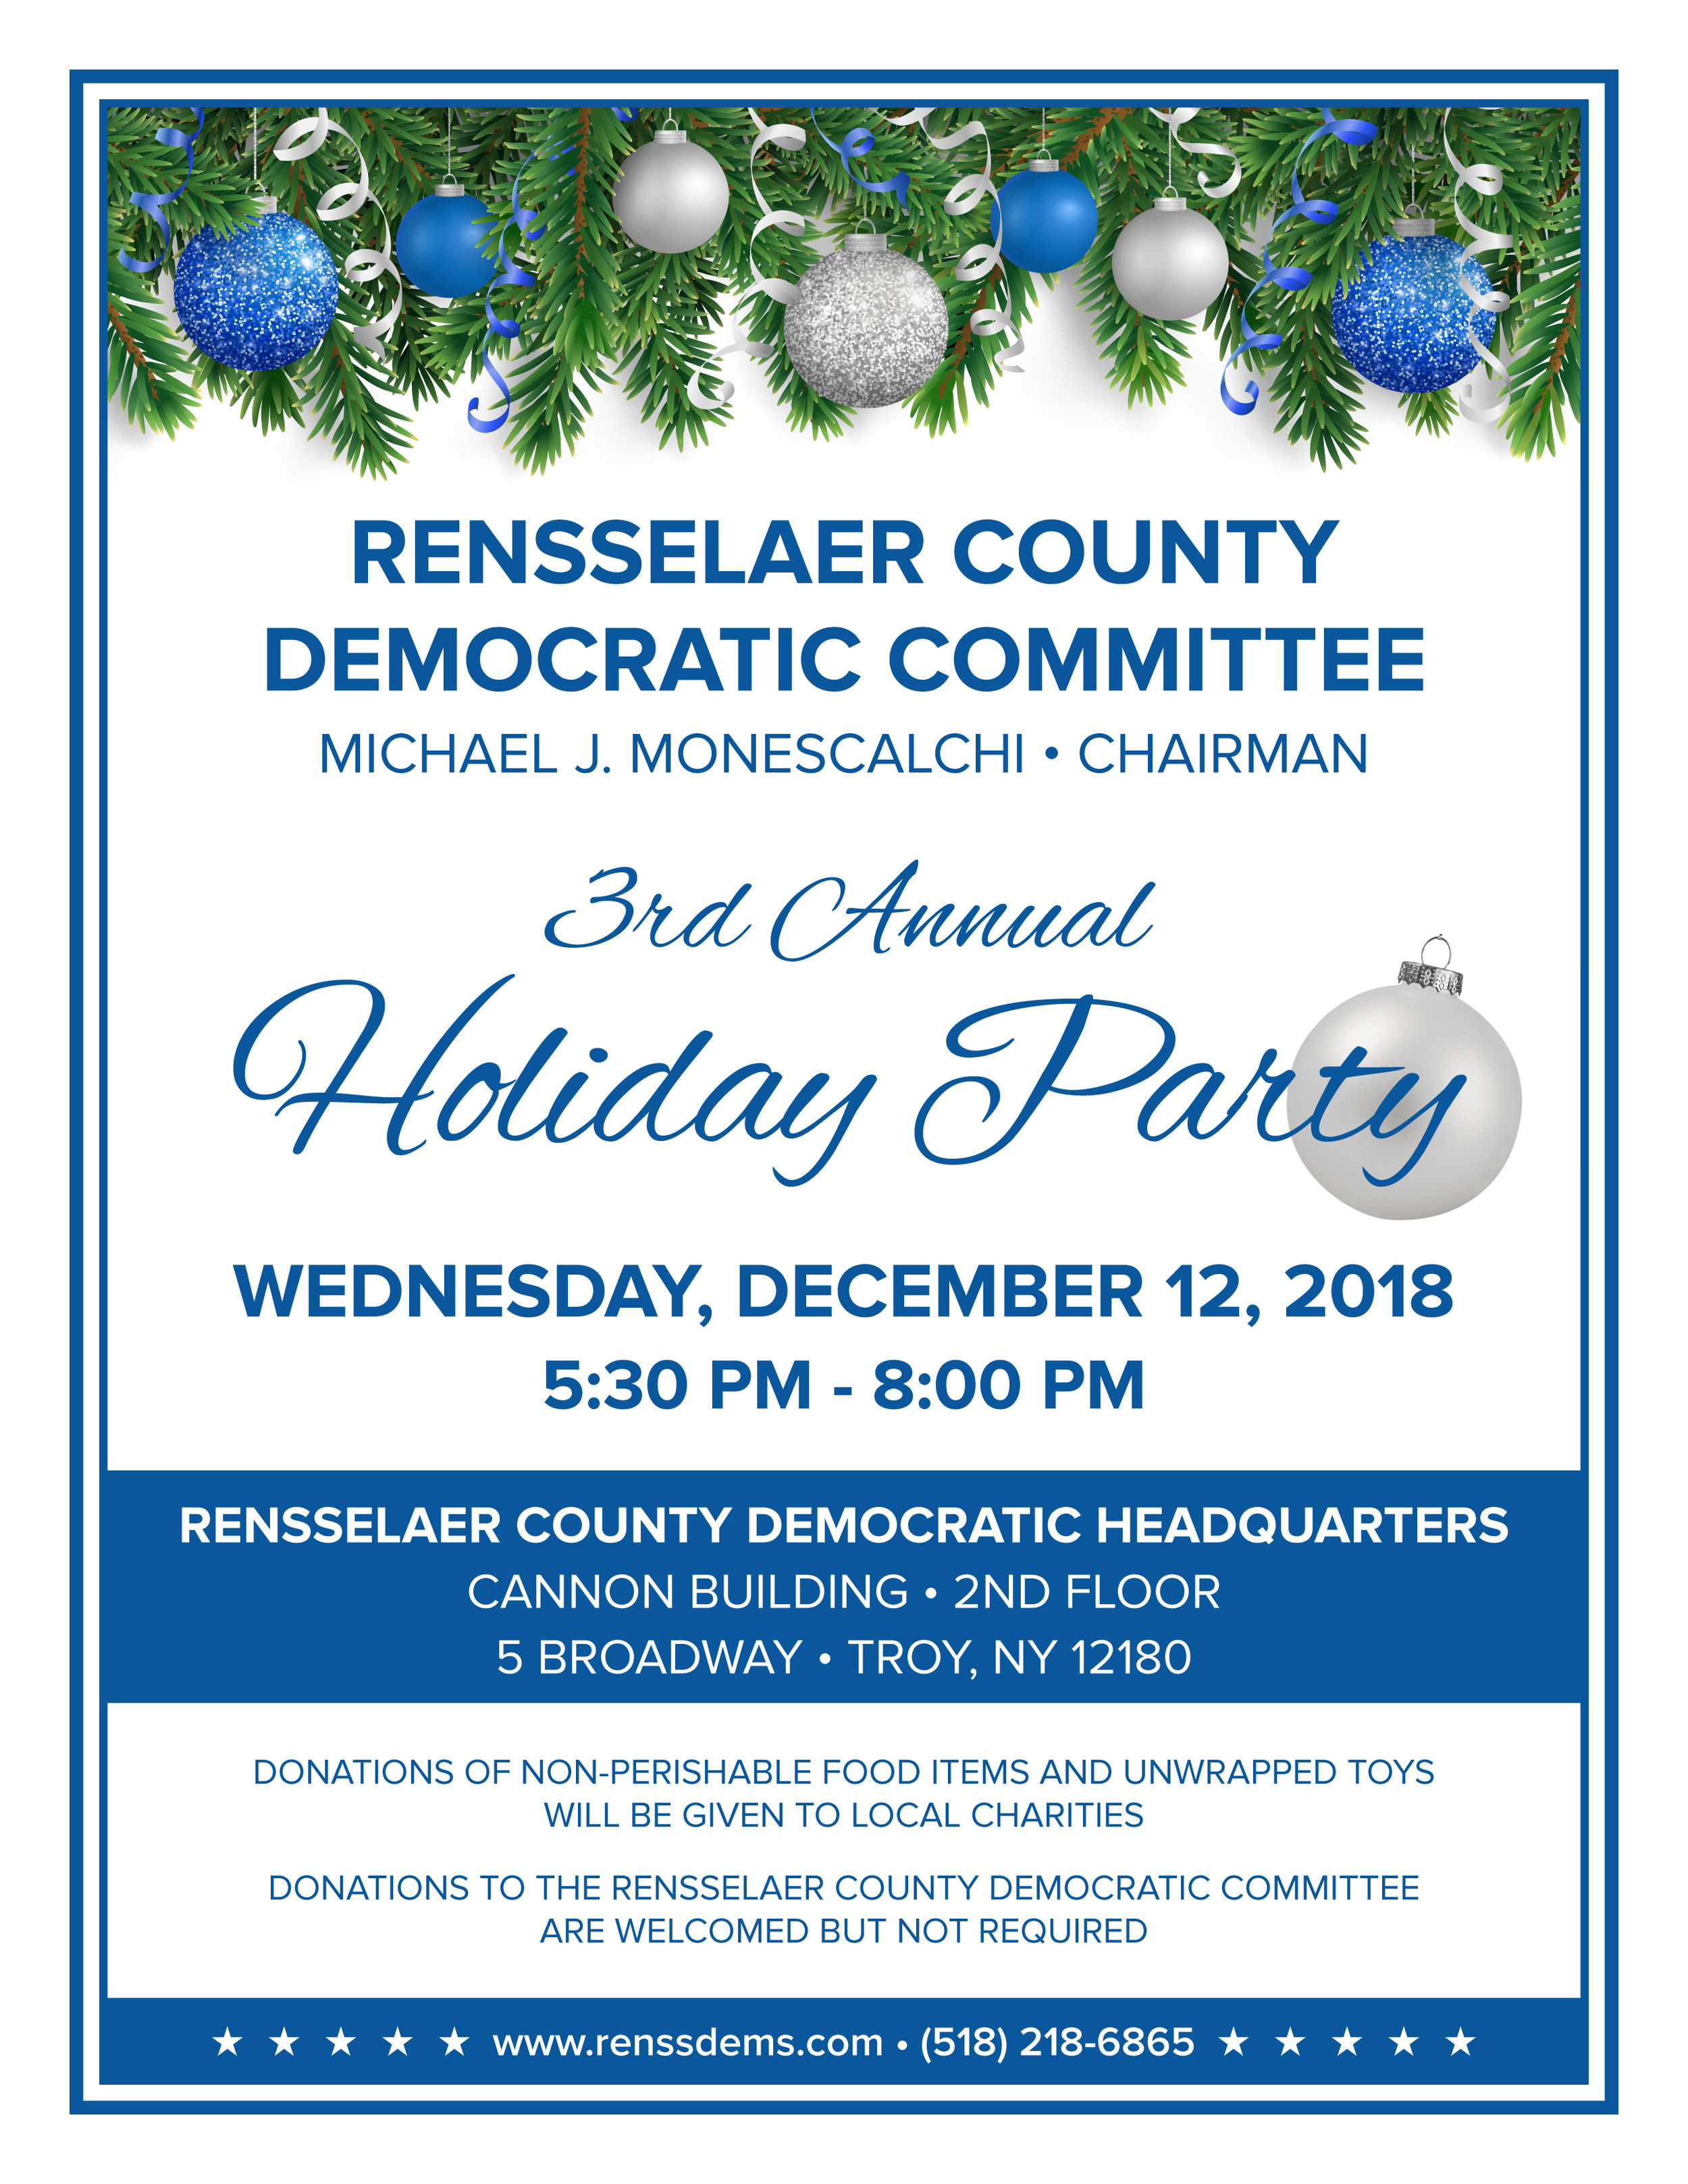 Rensselaer County Democrats 2018 Holiday Party Invitation.jpg